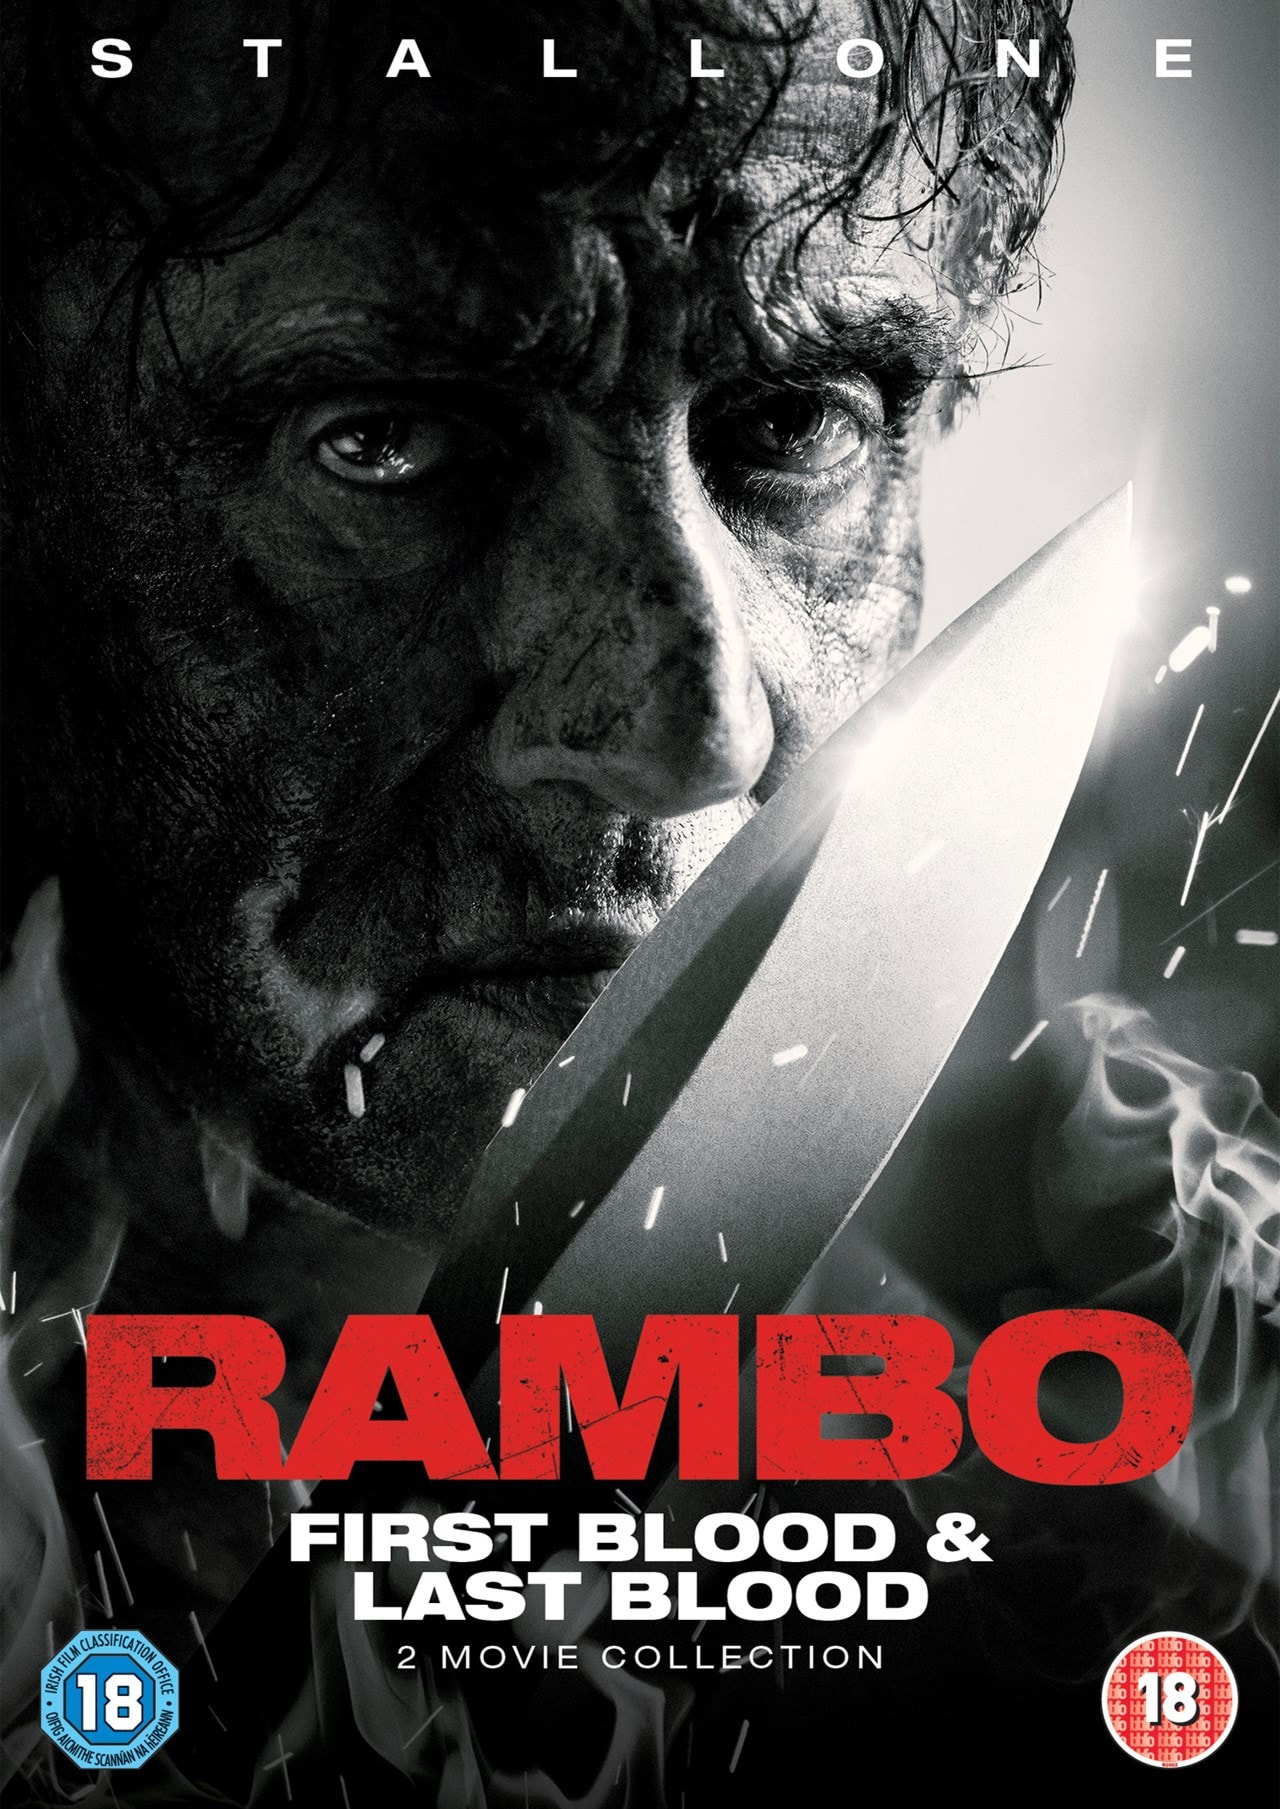 Rambo: First Blood & Last Blood - 1